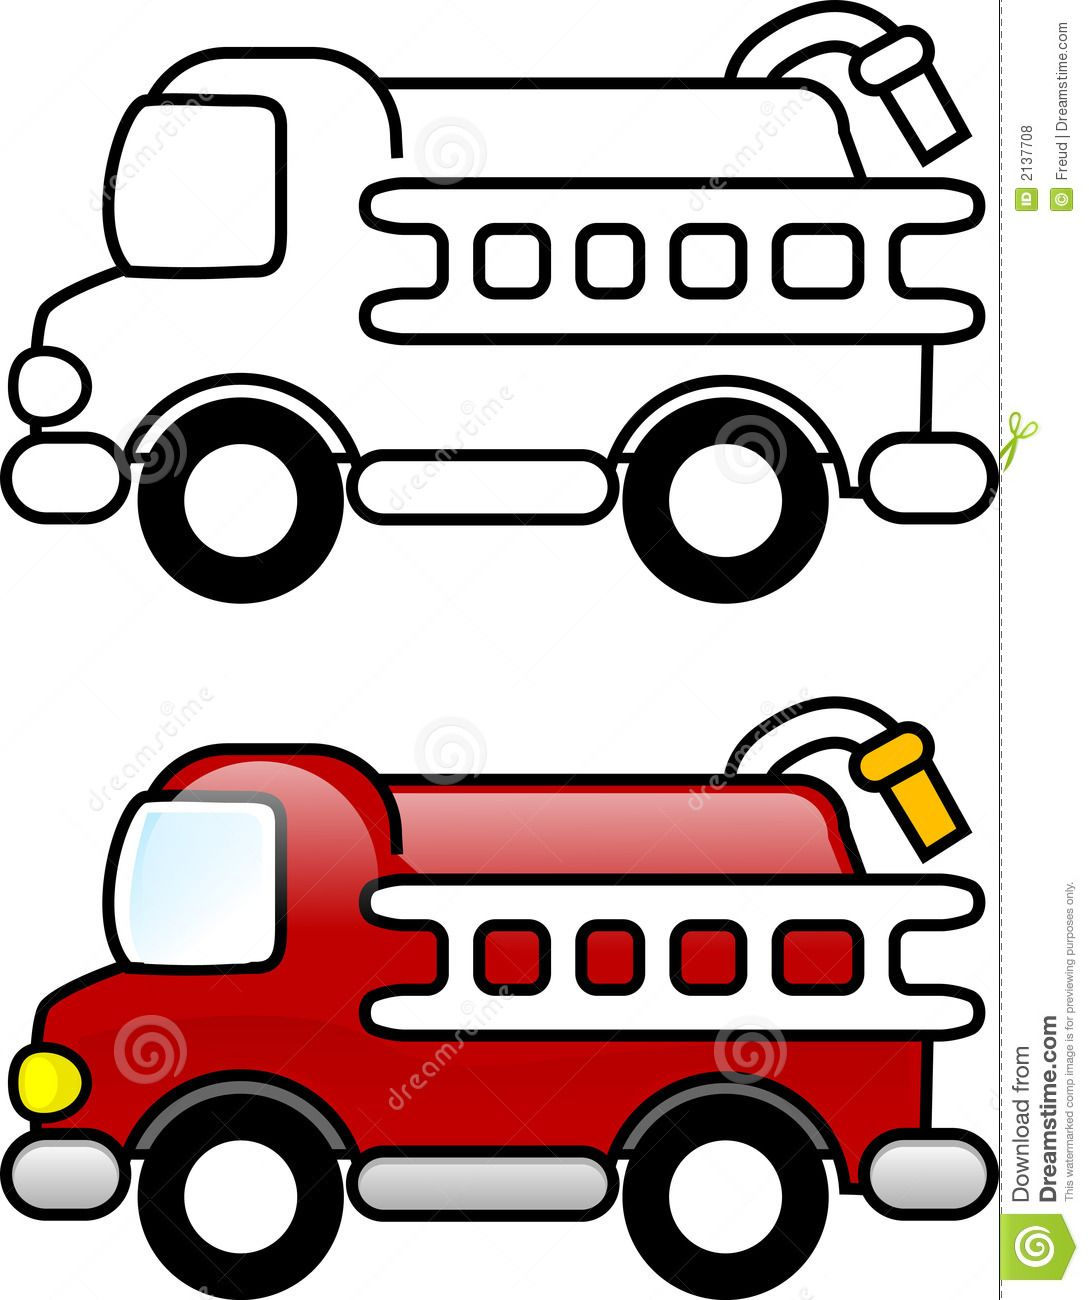 Preschool Fire Truck Coloring Pages Children Pinterest Fire